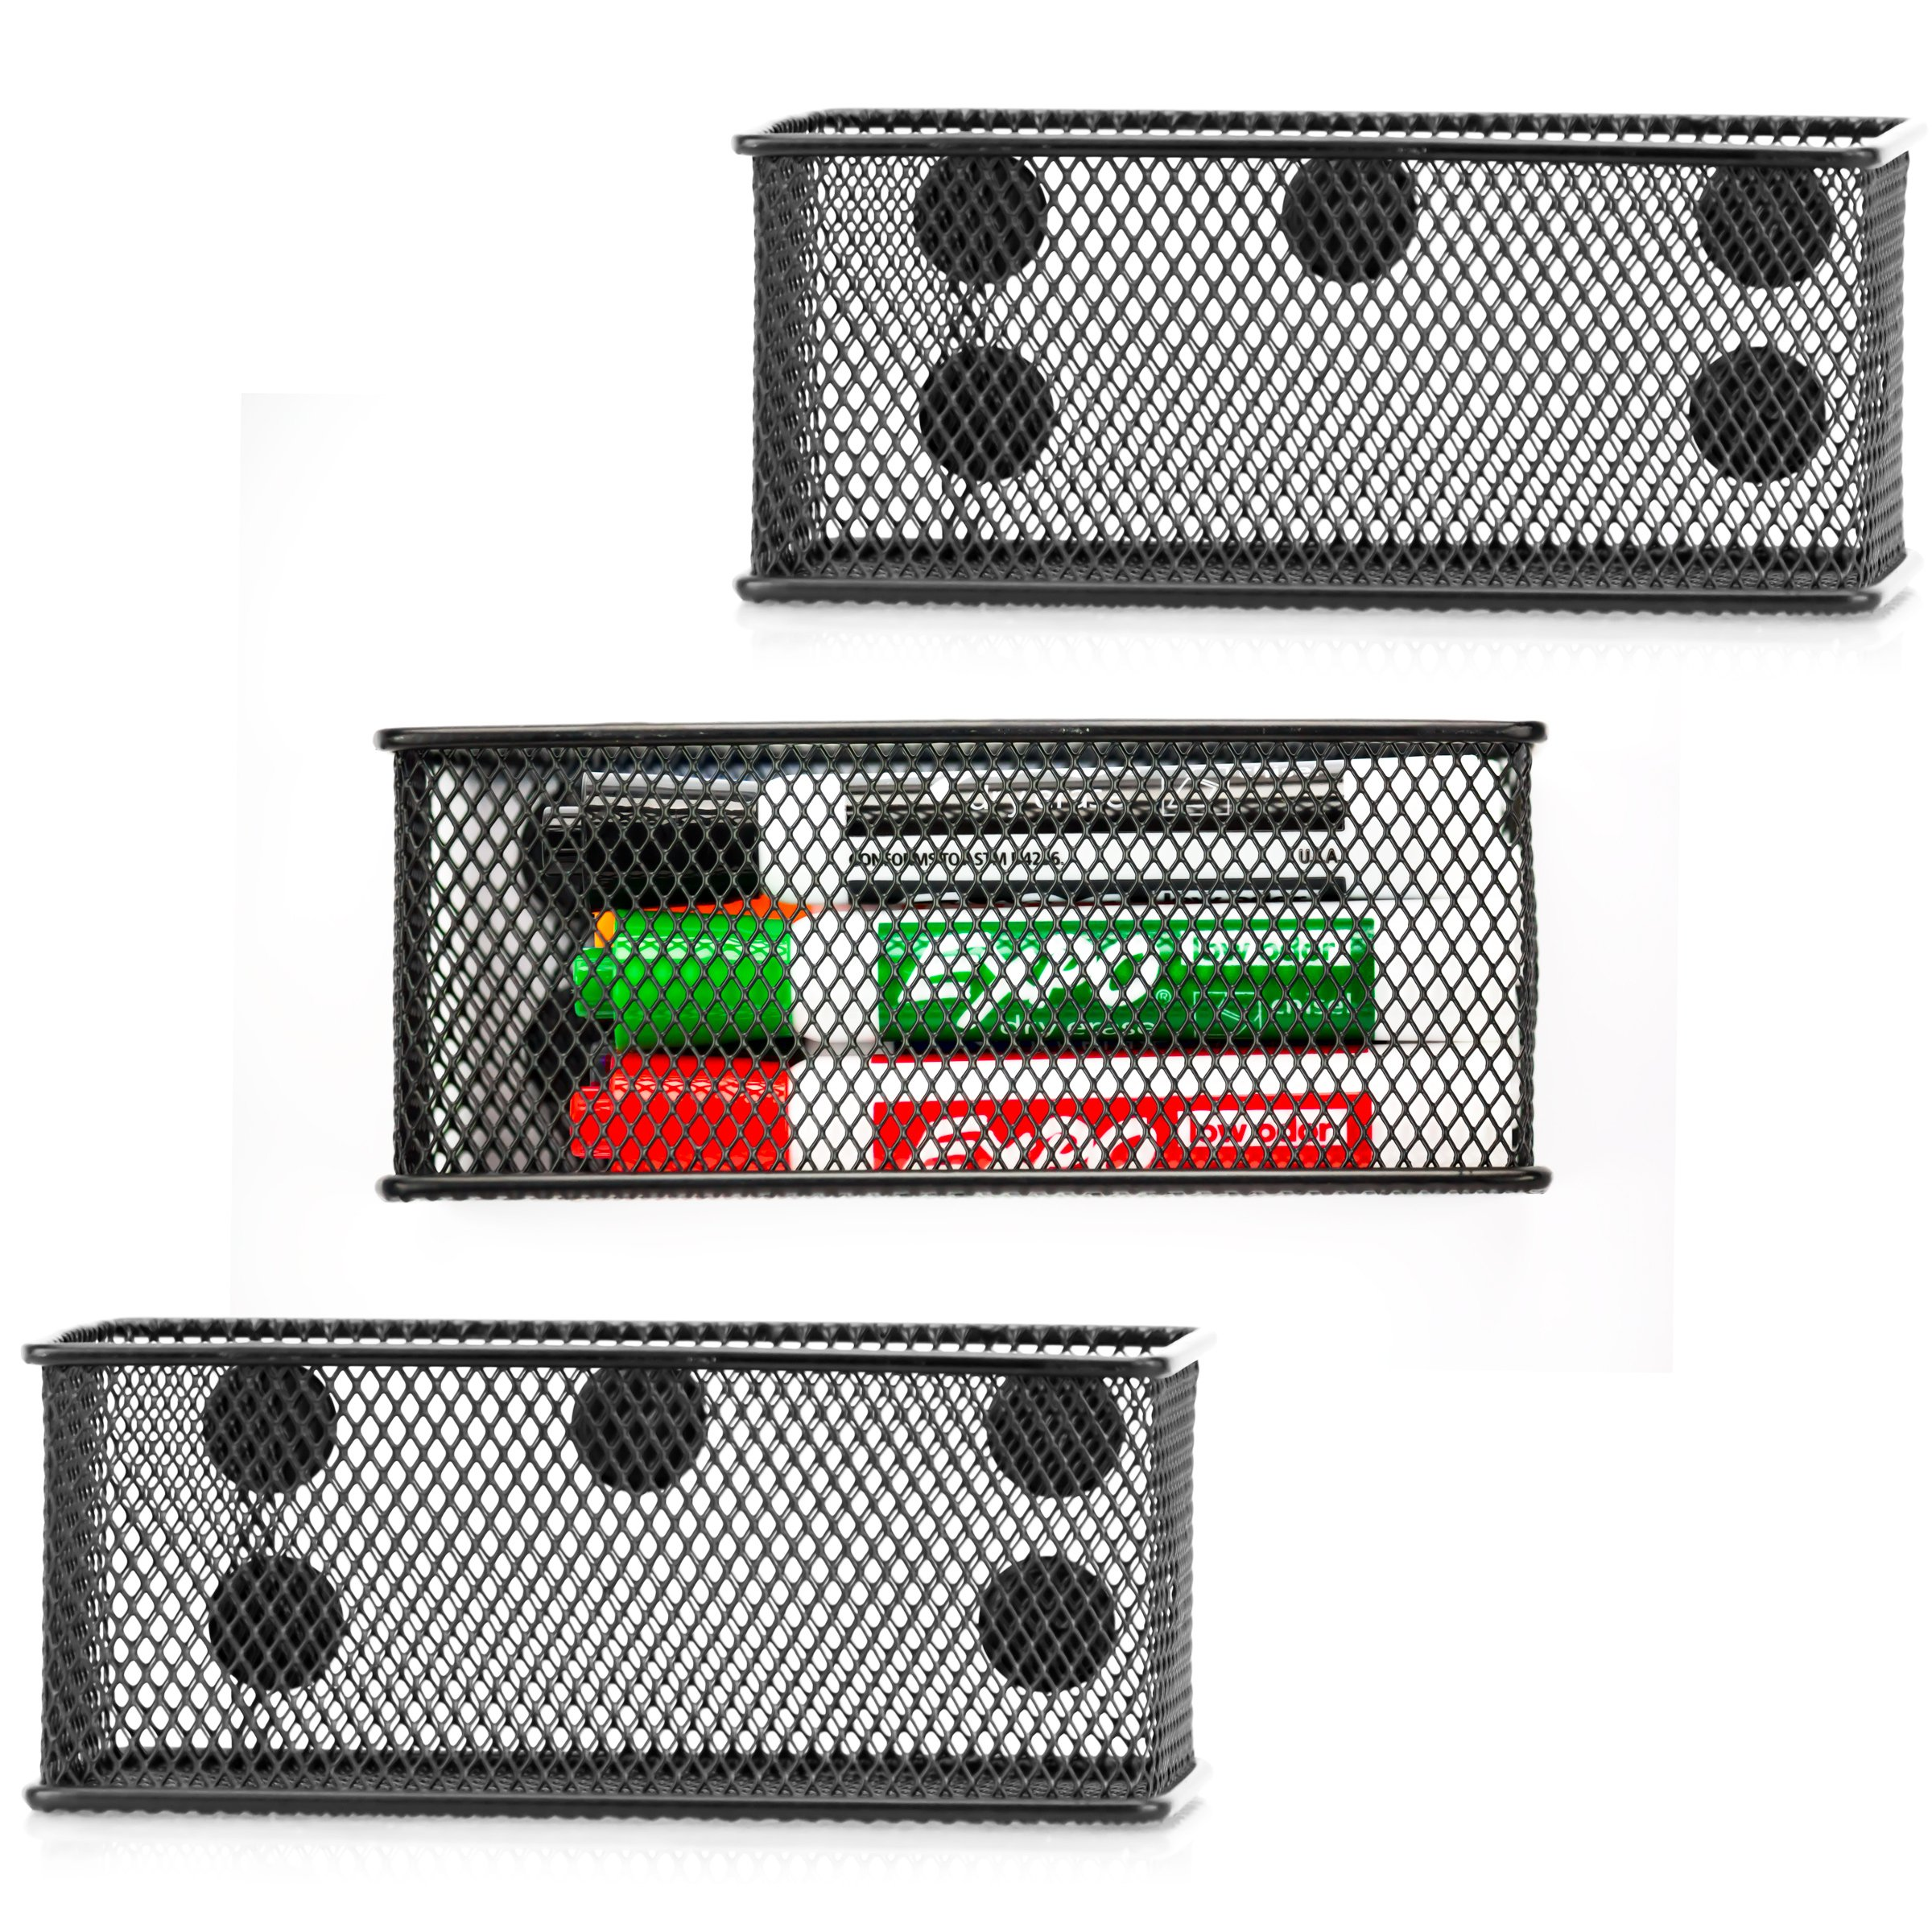 Premium Magnetic Organizer Set of 3 - Black Wire Mesh Storage Baskets with strong Magnets keep your office clutter-free